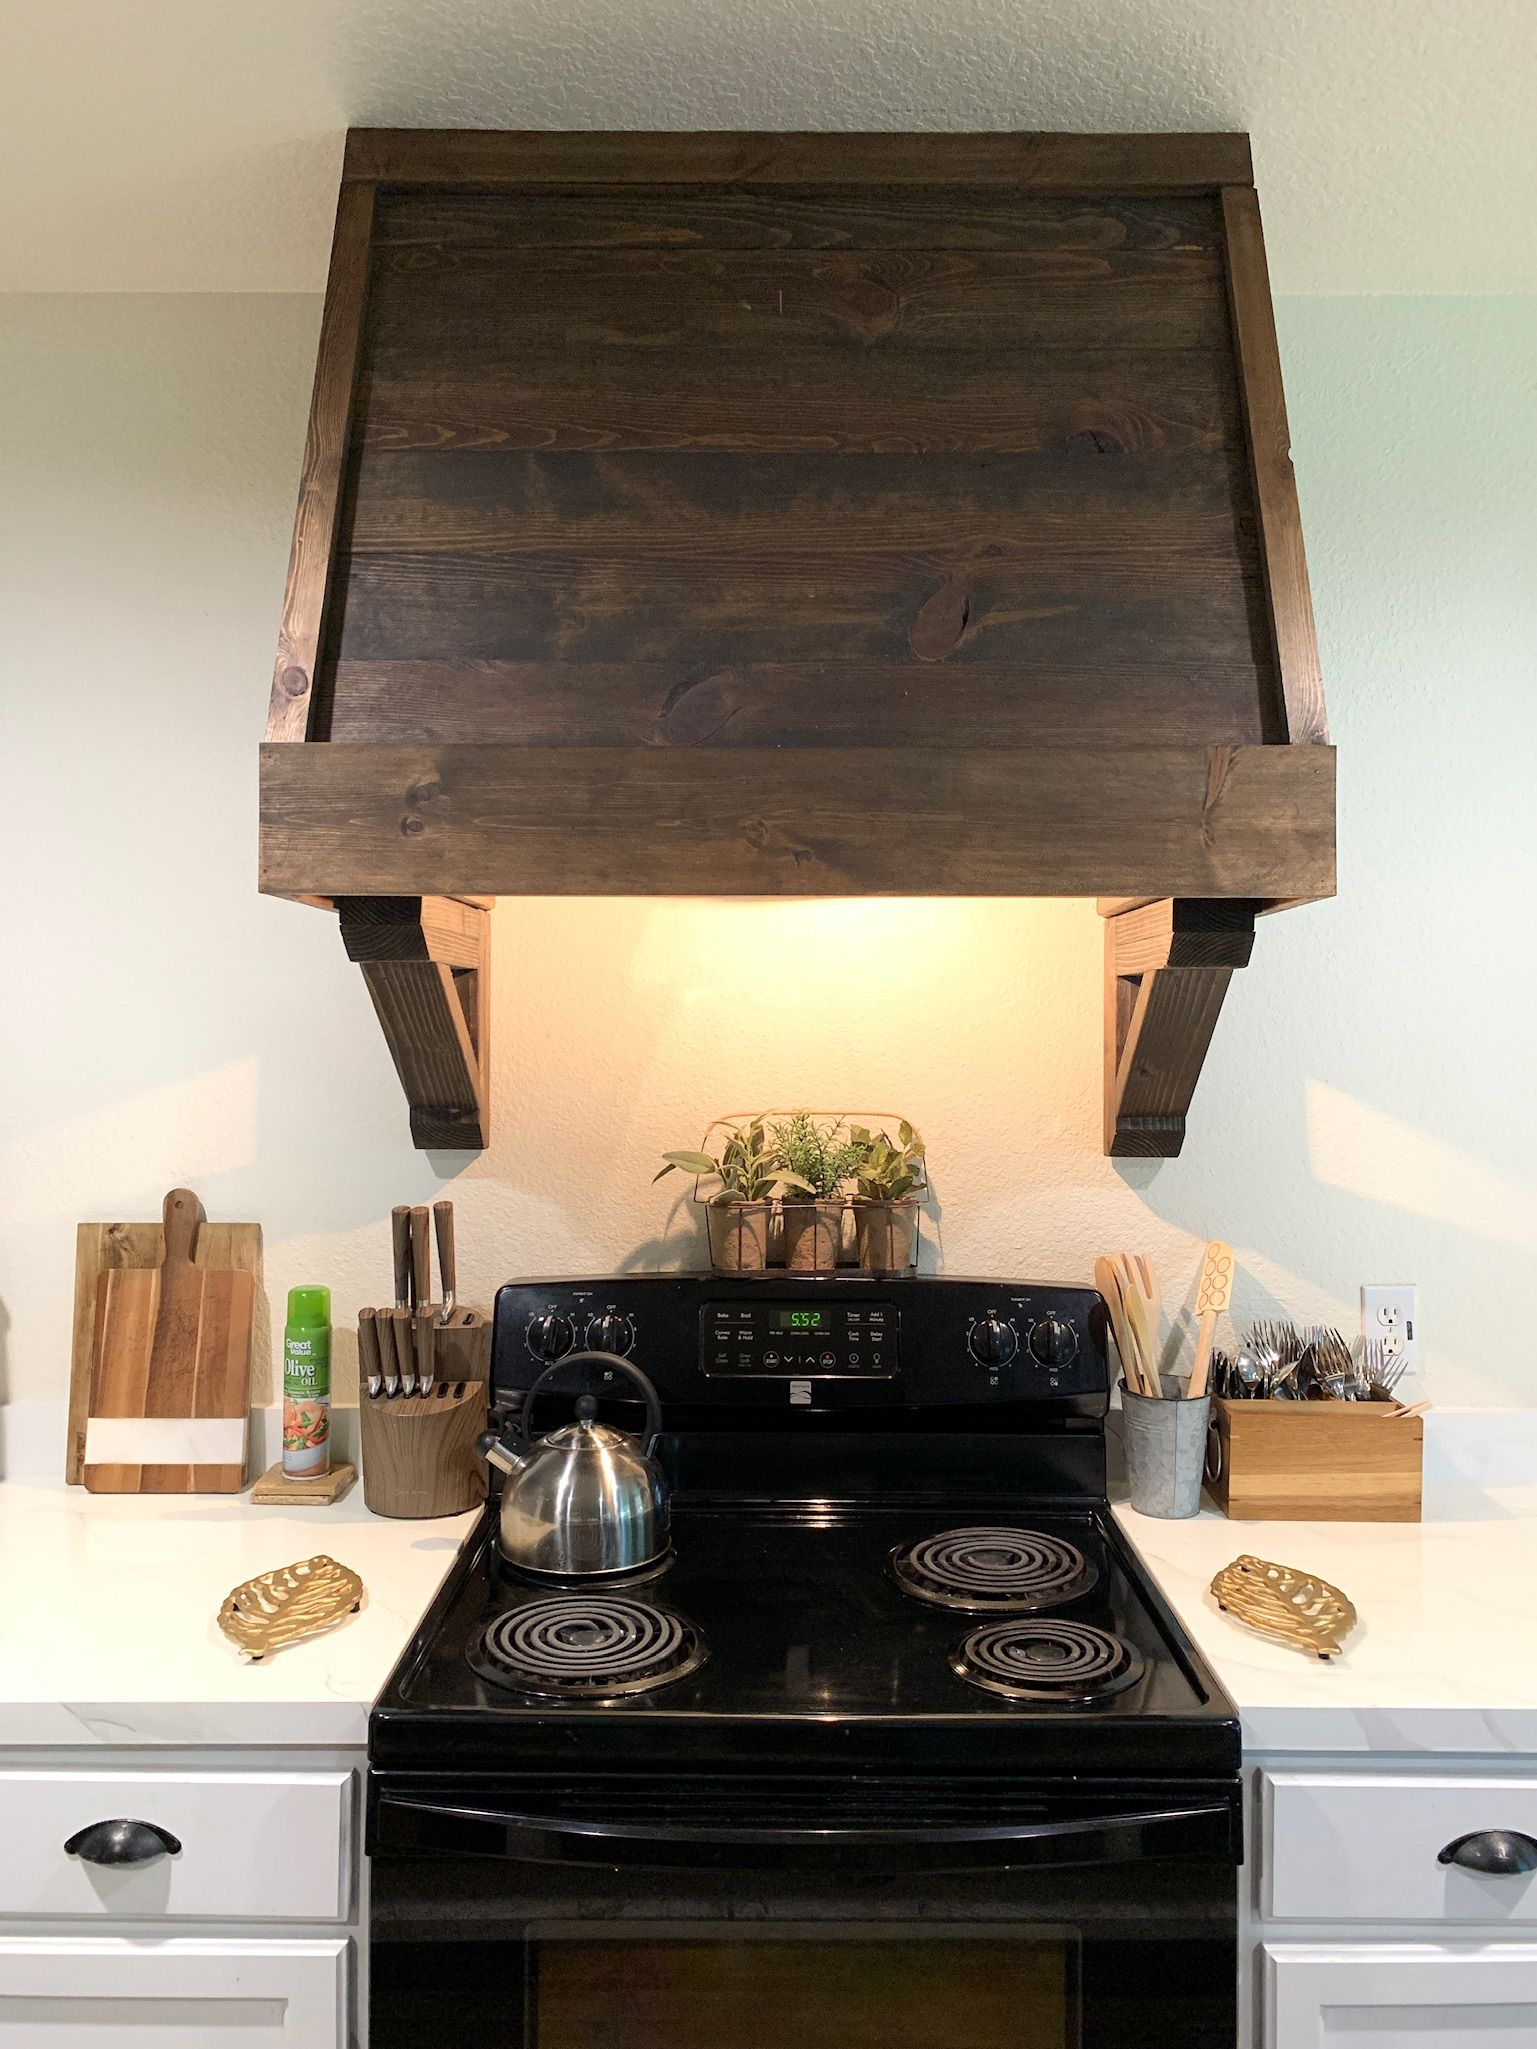 DIY Rustic Vent Hood Cover (With images) Hood vent cover